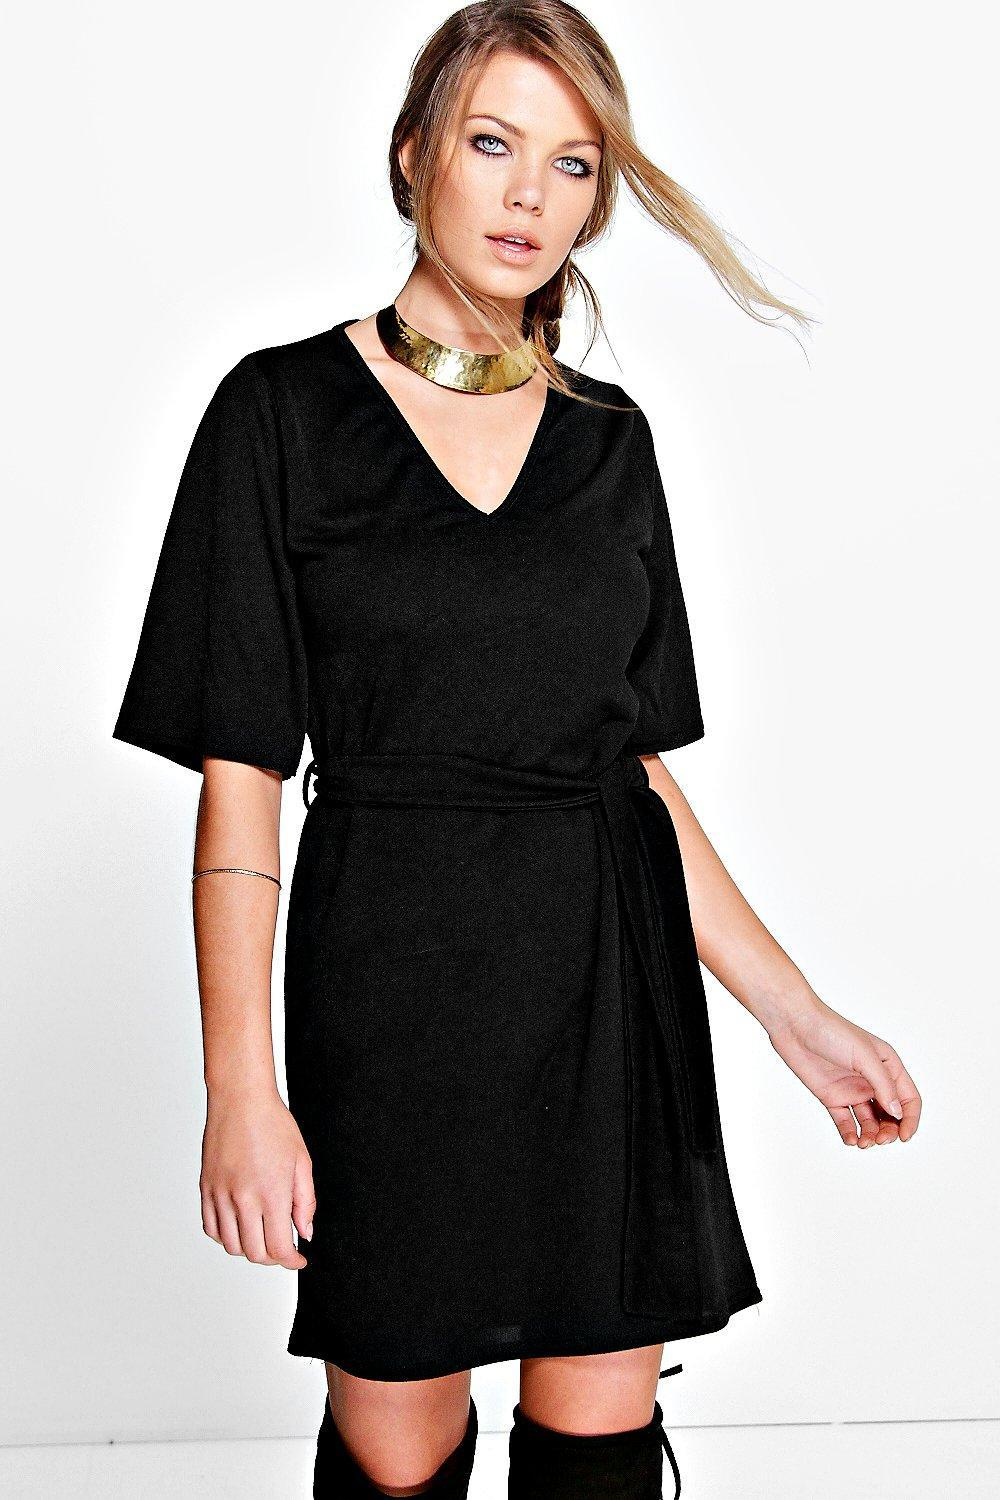 Kimono Sleeve Obi Belt Shift Dress Black - style: shift; length: mid thigh; neckline: v-neck; pattern: plain; waist detail: belted waist/tie at waist/drawstring; predominant colour: black; occasions: evening; fit: body skimming; fibres: polyester/polyamide - stretch; sleeve length: half sleeve; sleeve style: standard; pattern type: fabric; texture group: jersey - stretchy/drapey; season: s/s 2016; wardrobe: event